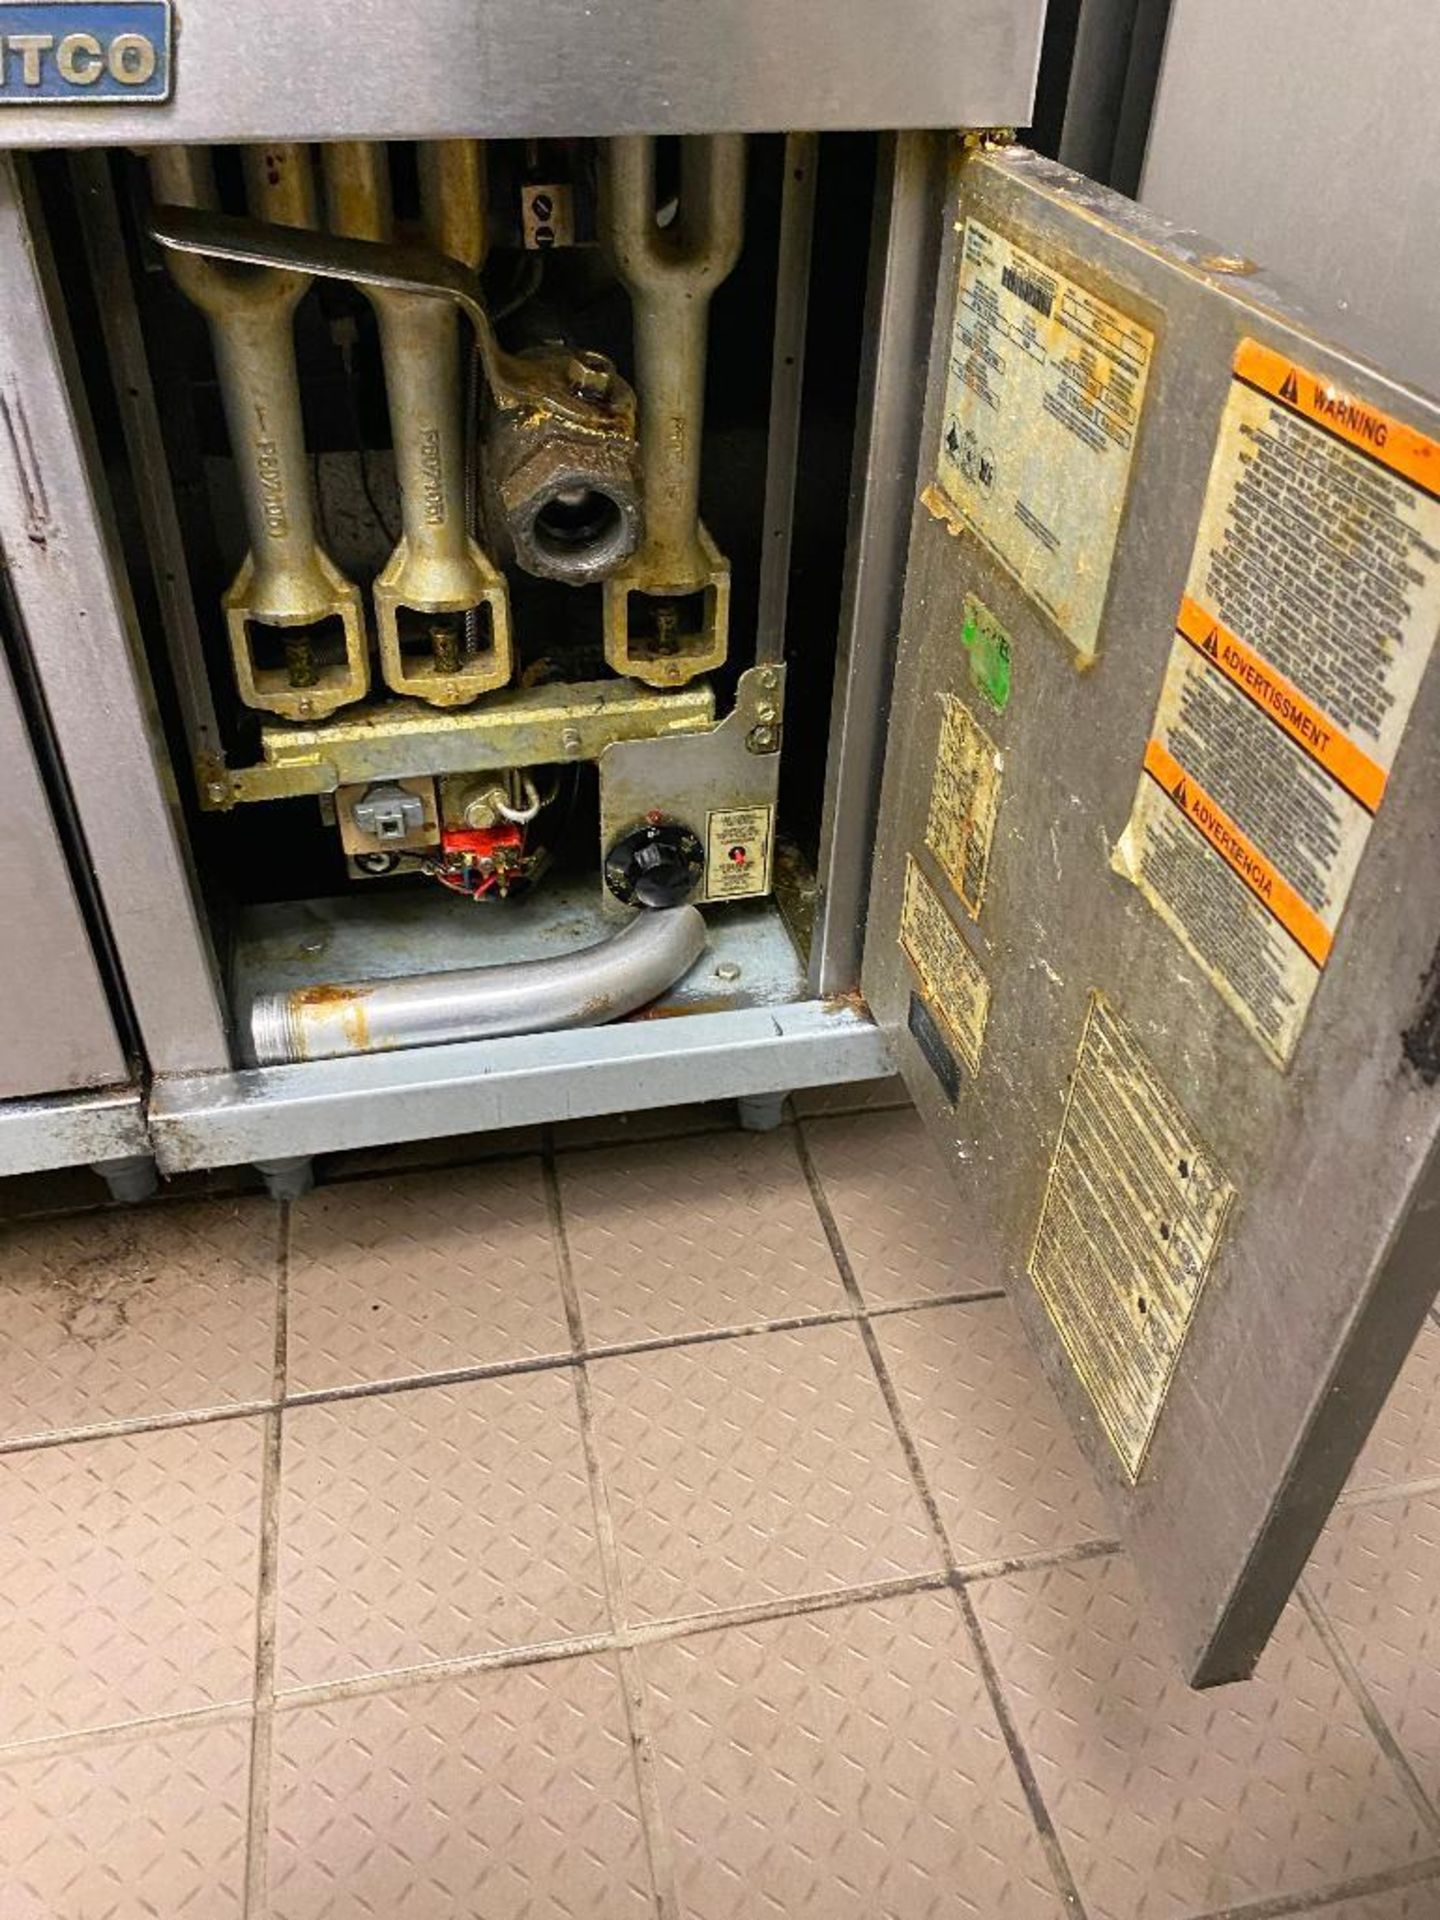 PITCO 40C+ FLOOR TUBE FIRED NATURAL GAS FRYER - NOTE: REQUIRES DISCONNECT, PLEASE INSPECT - Image 3 of 4